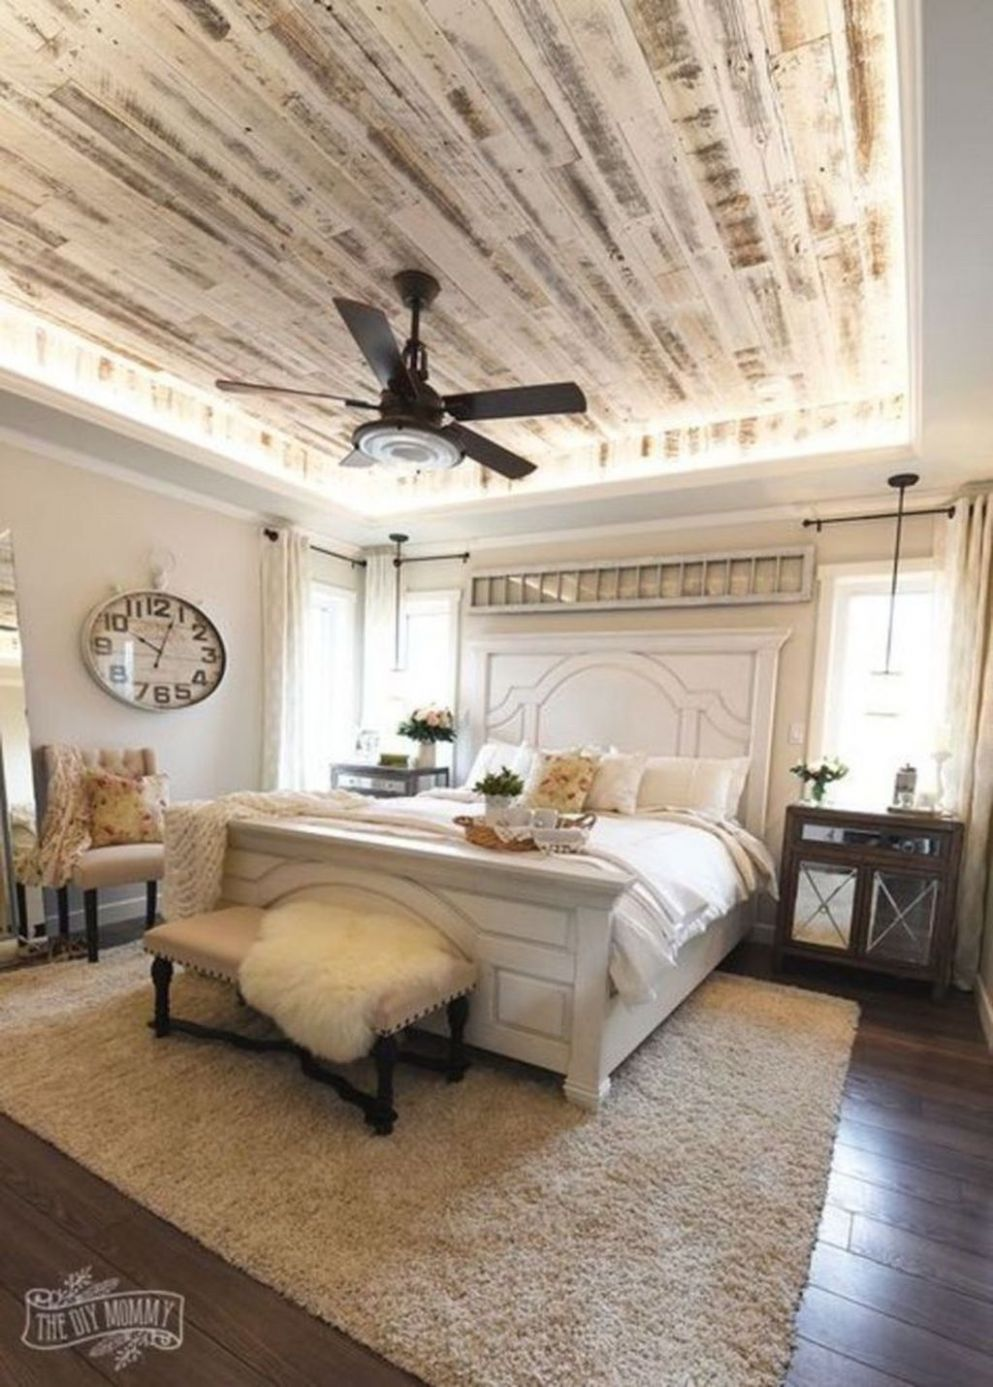 Relaxing Rustic Farmhouse Master Bedroom Ideas 11 | Schlafzimmer ...